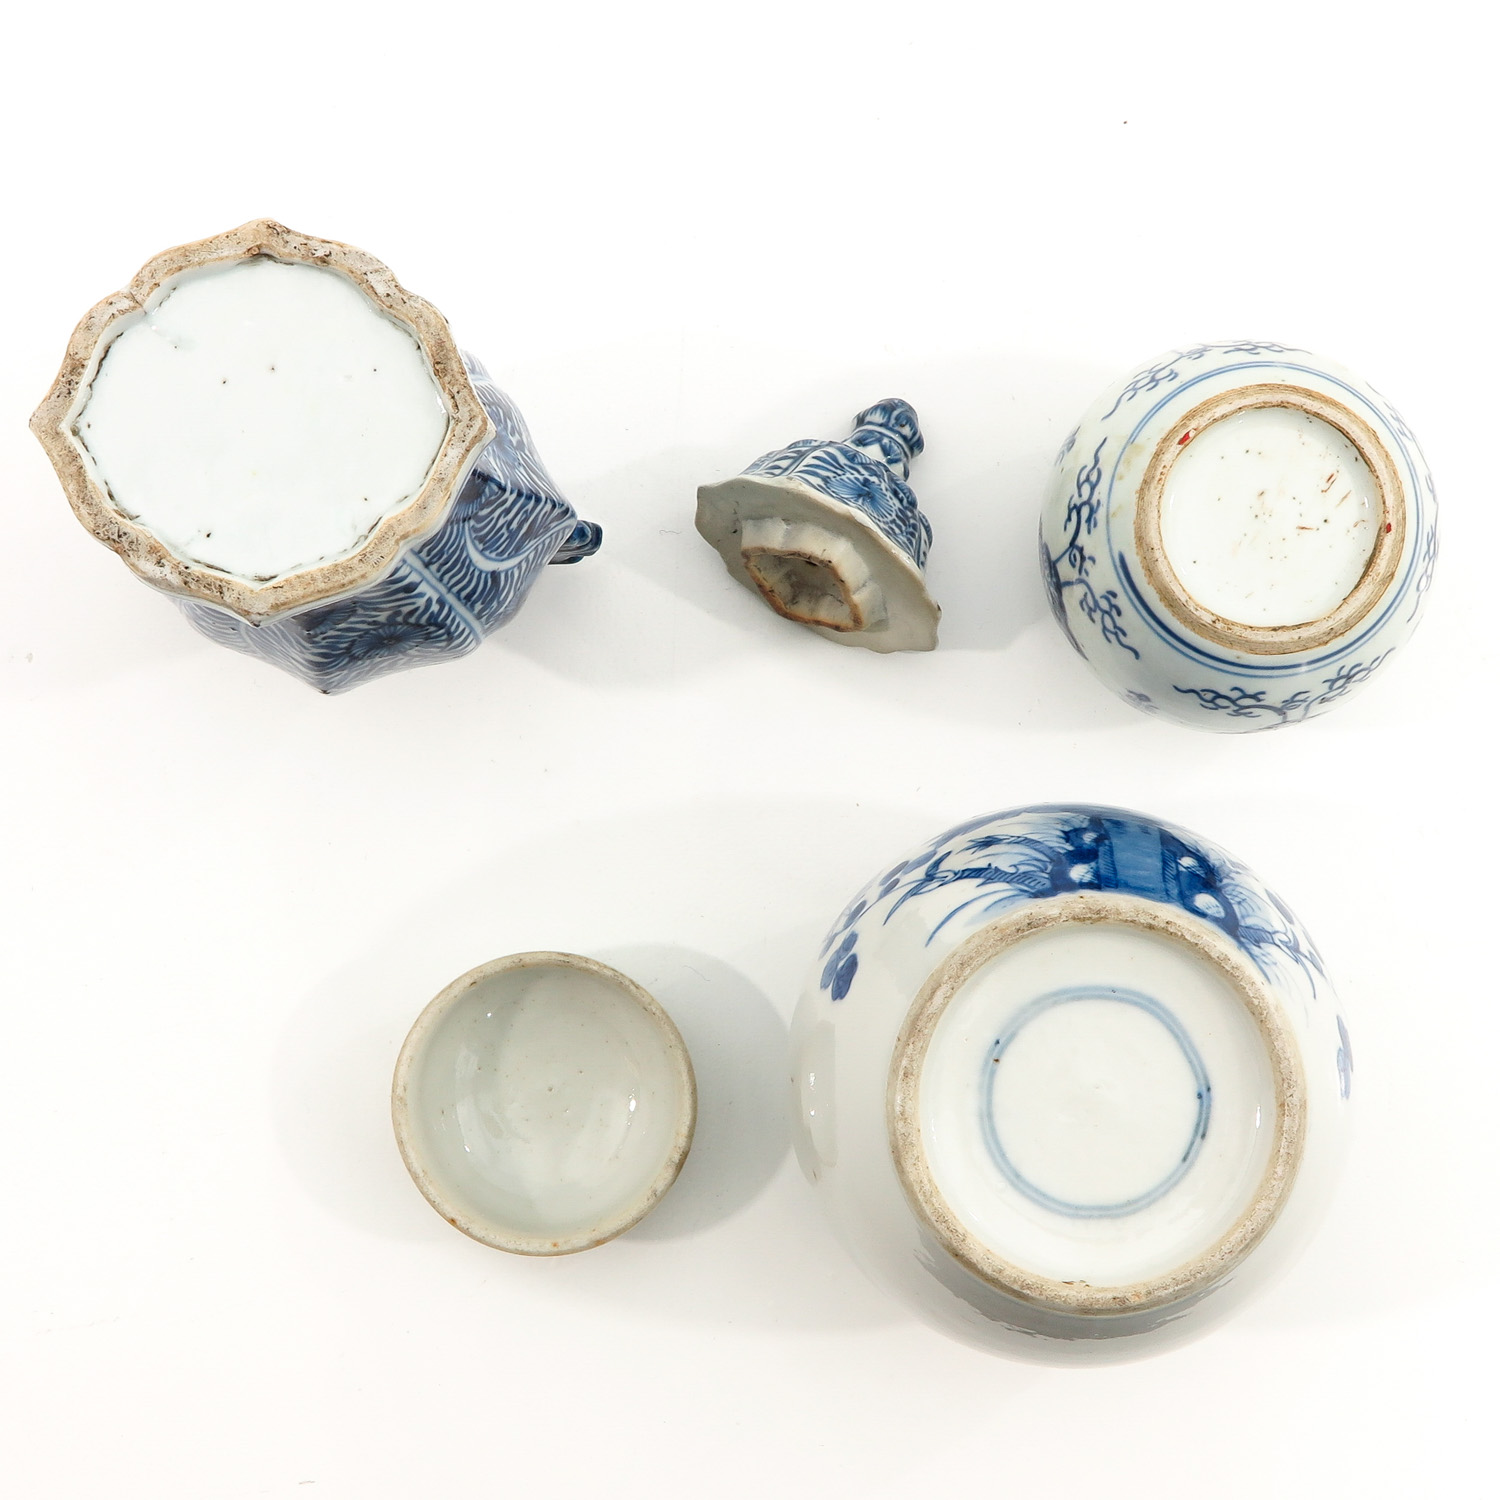 A Diverse Collection of Porcelain - Image 6 of 9